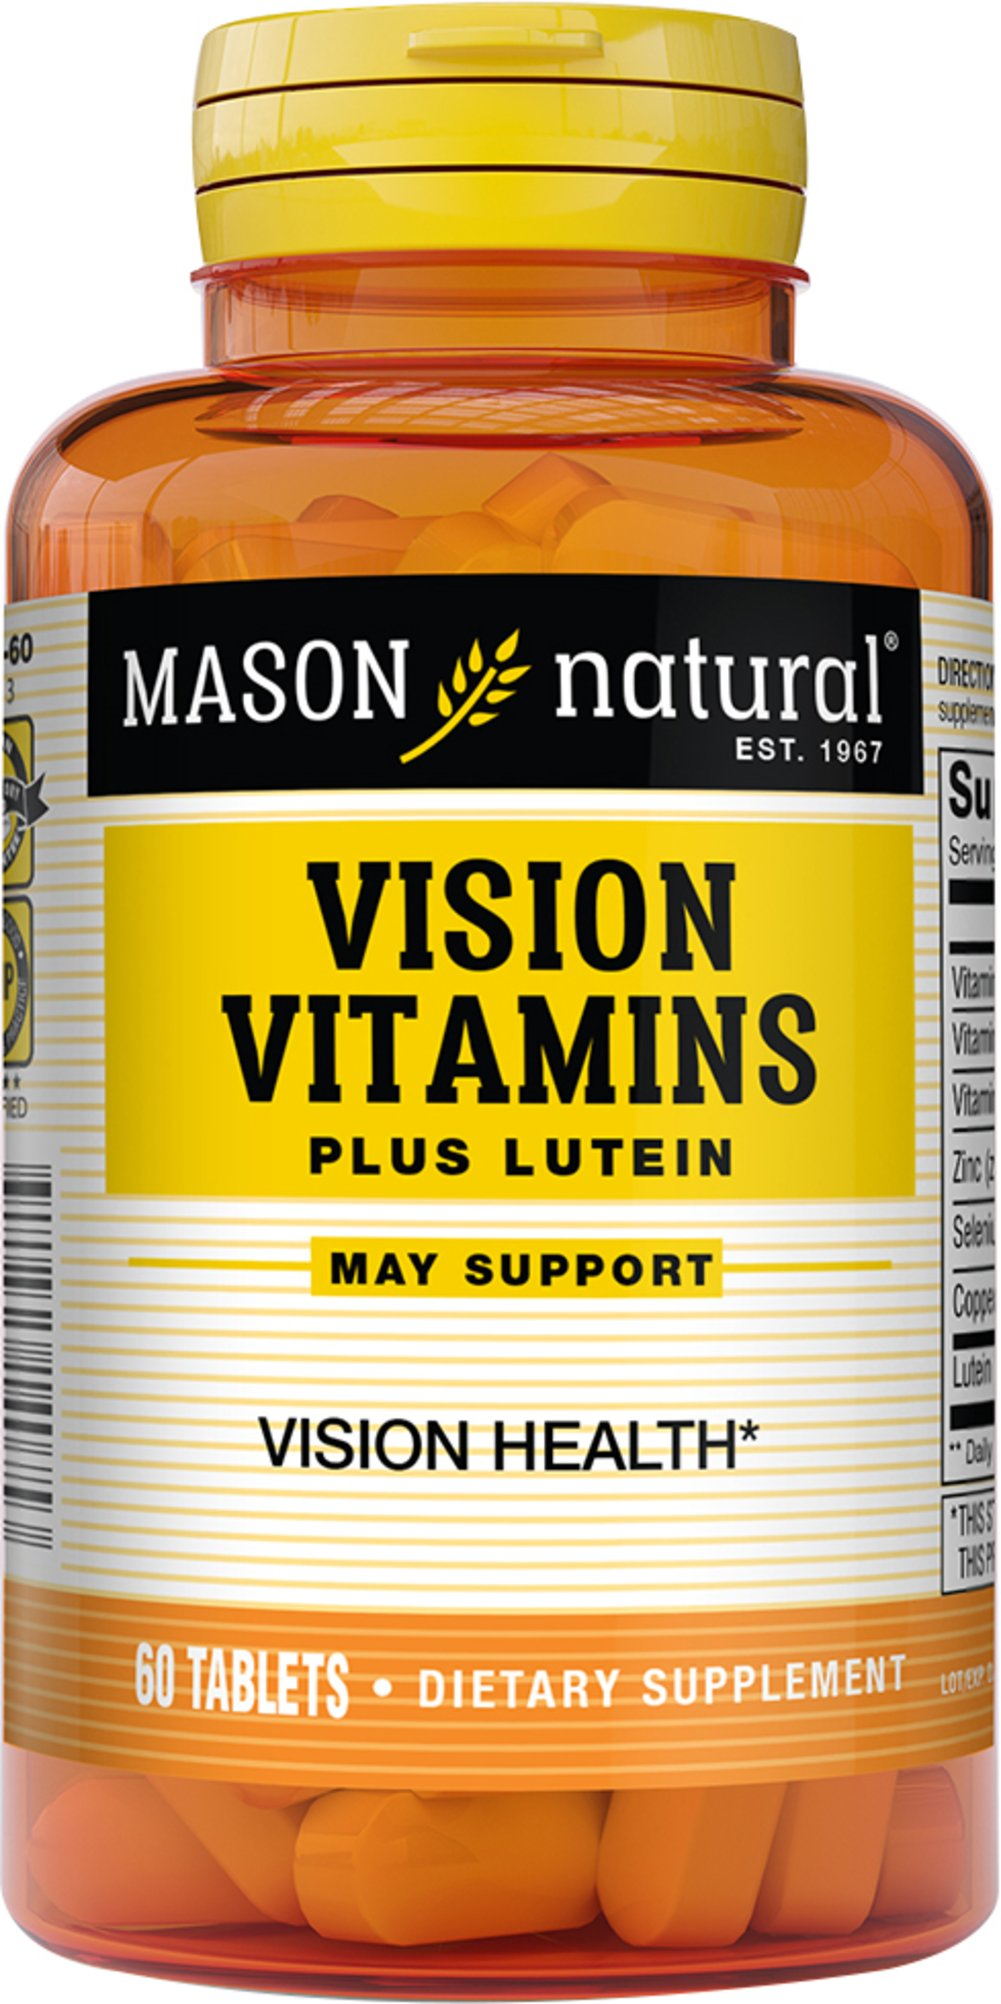 Vision Vitamins Plus Lutein <strong>From the Manufacturer's Label:</strong><br /><br />High Potency  Antioxidant<br />Helps maintain Healthy vision**<br /><br />Manufactured by Mason 60 Tablets  $6.59